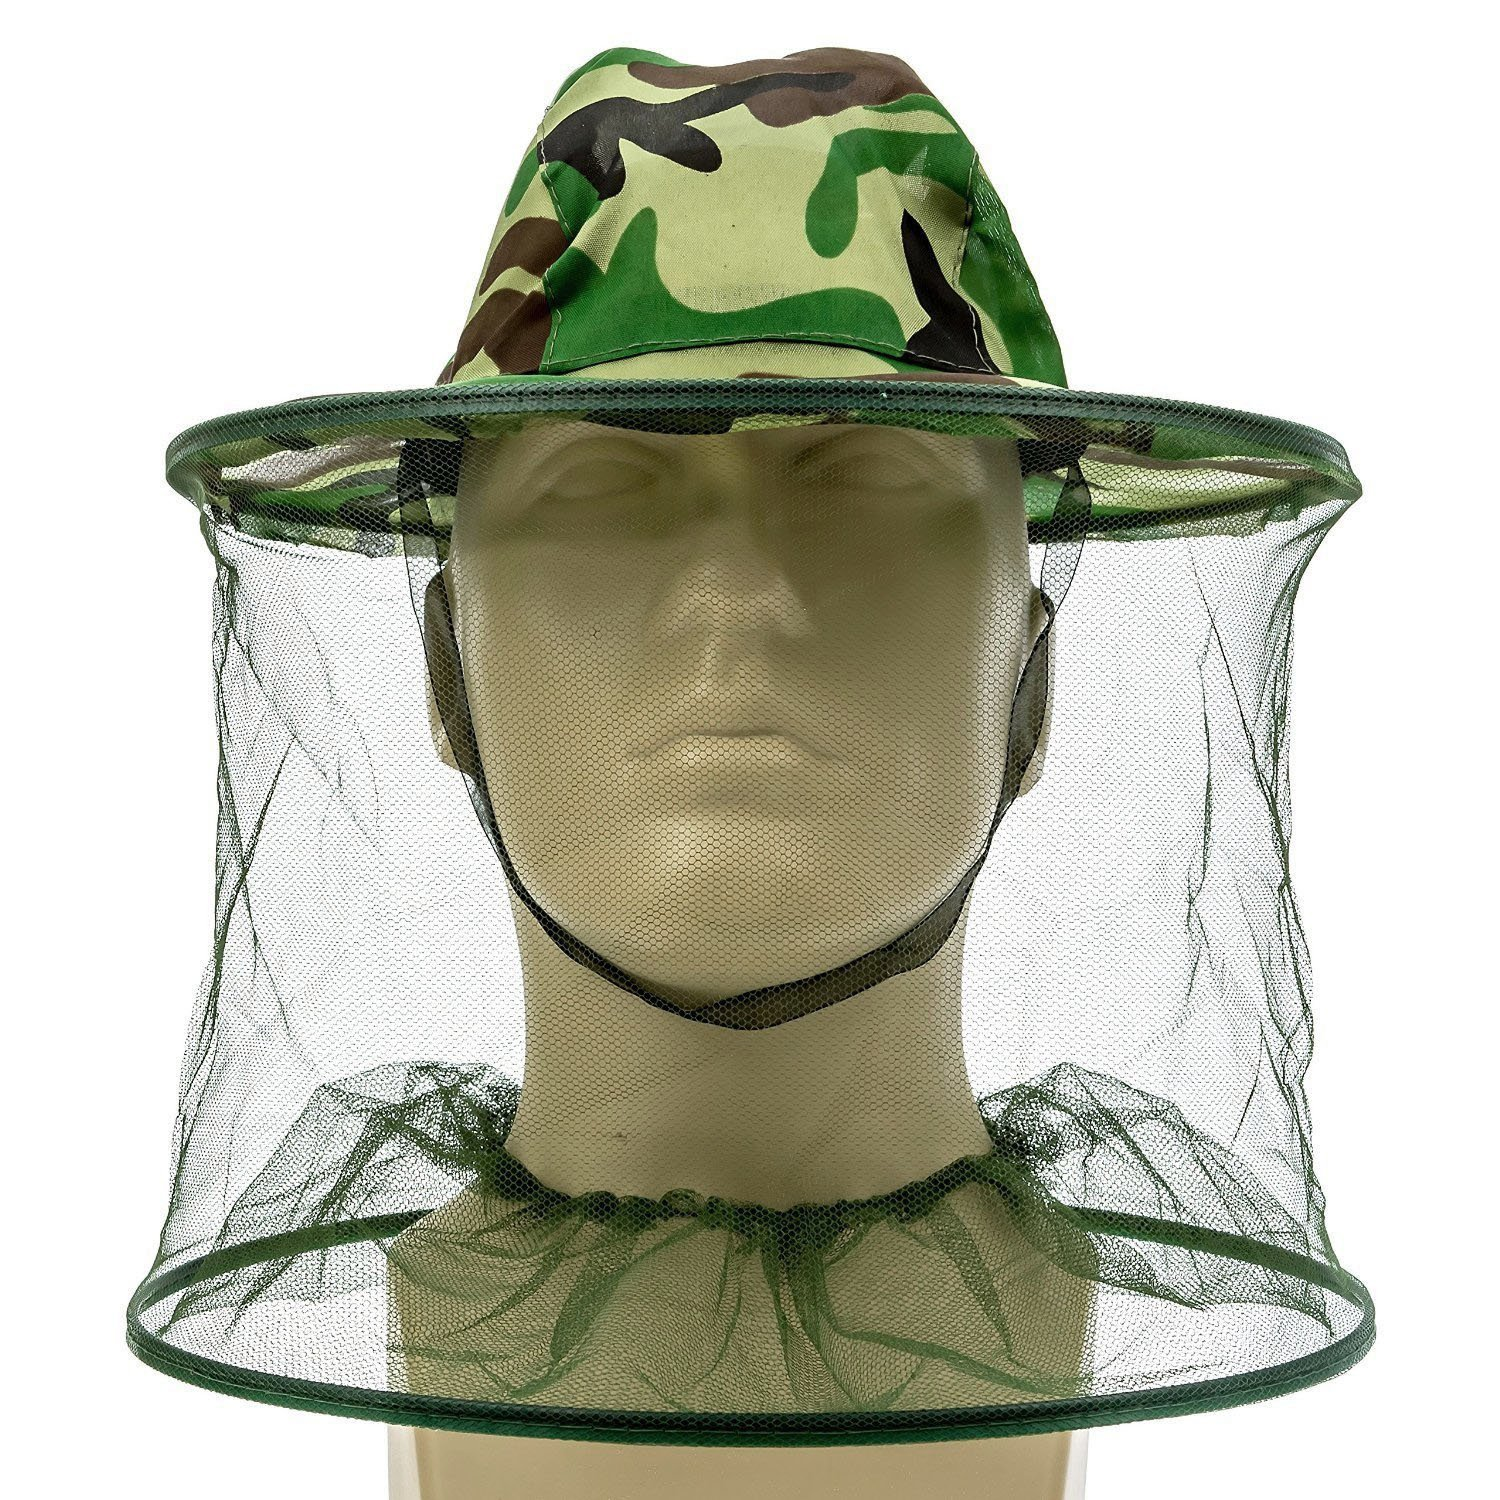 bb5f4f4d2 Buy Skydume Outdoor Anti-mosquito Bees Mask Hat with Head Net Mesh ...